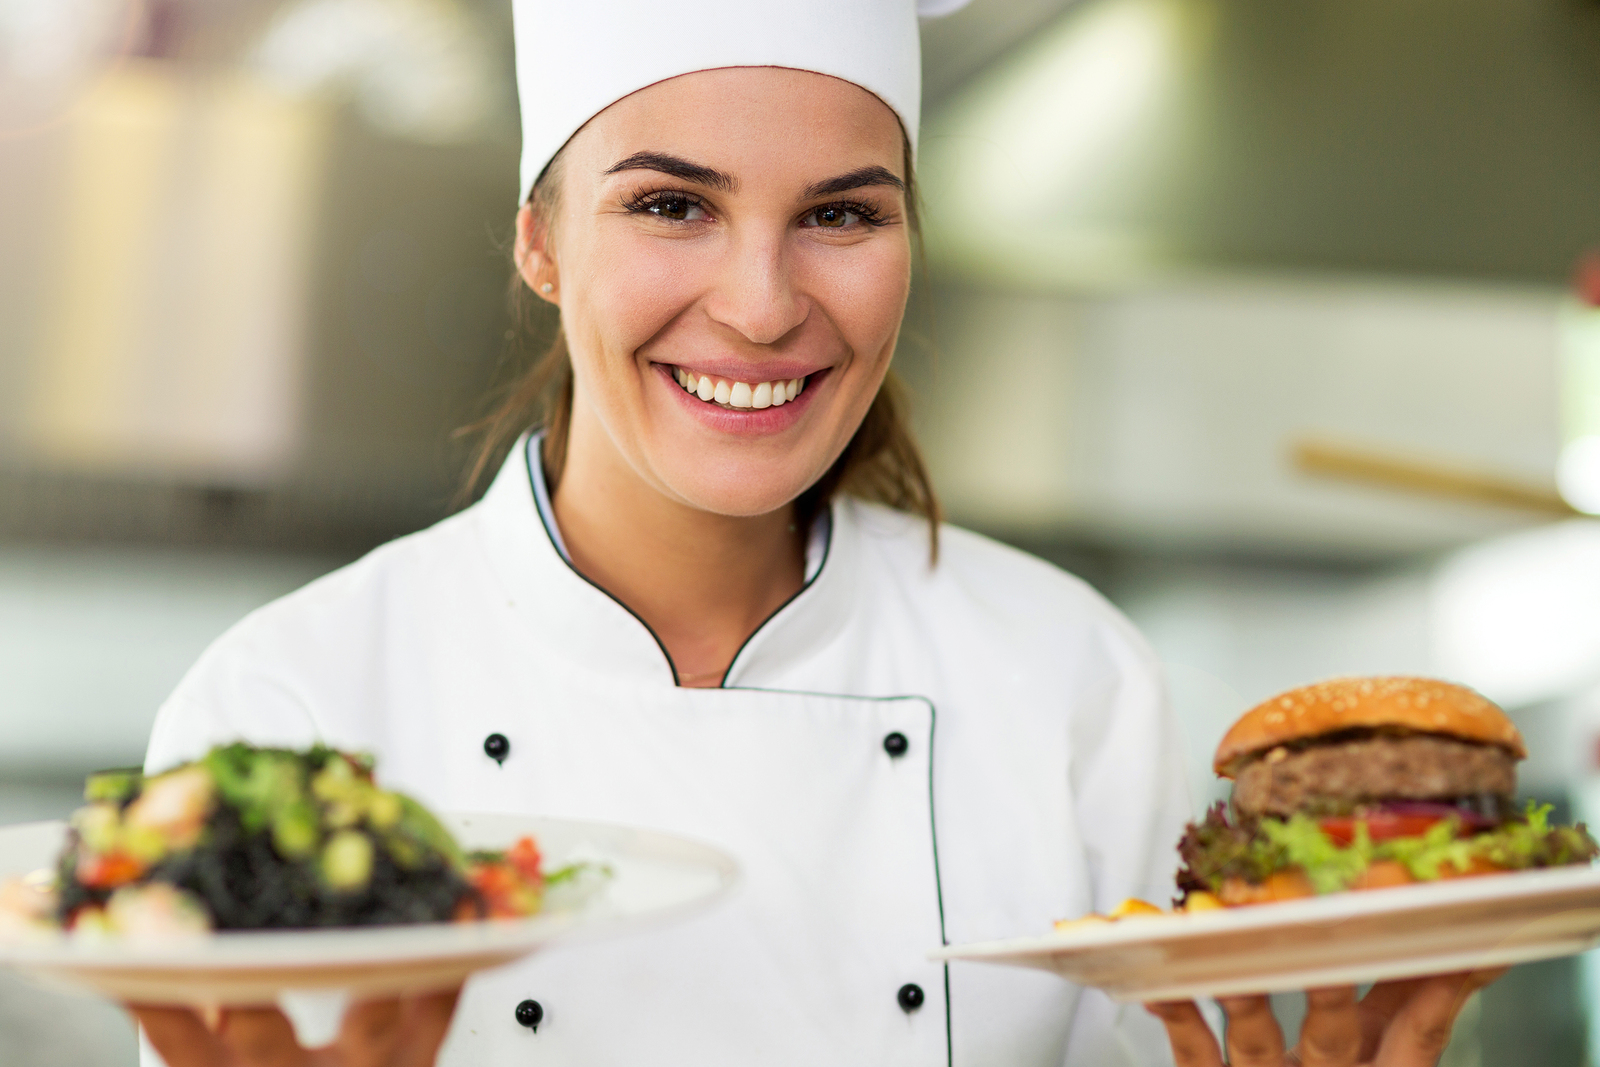 Female Chef With Plates Of Food